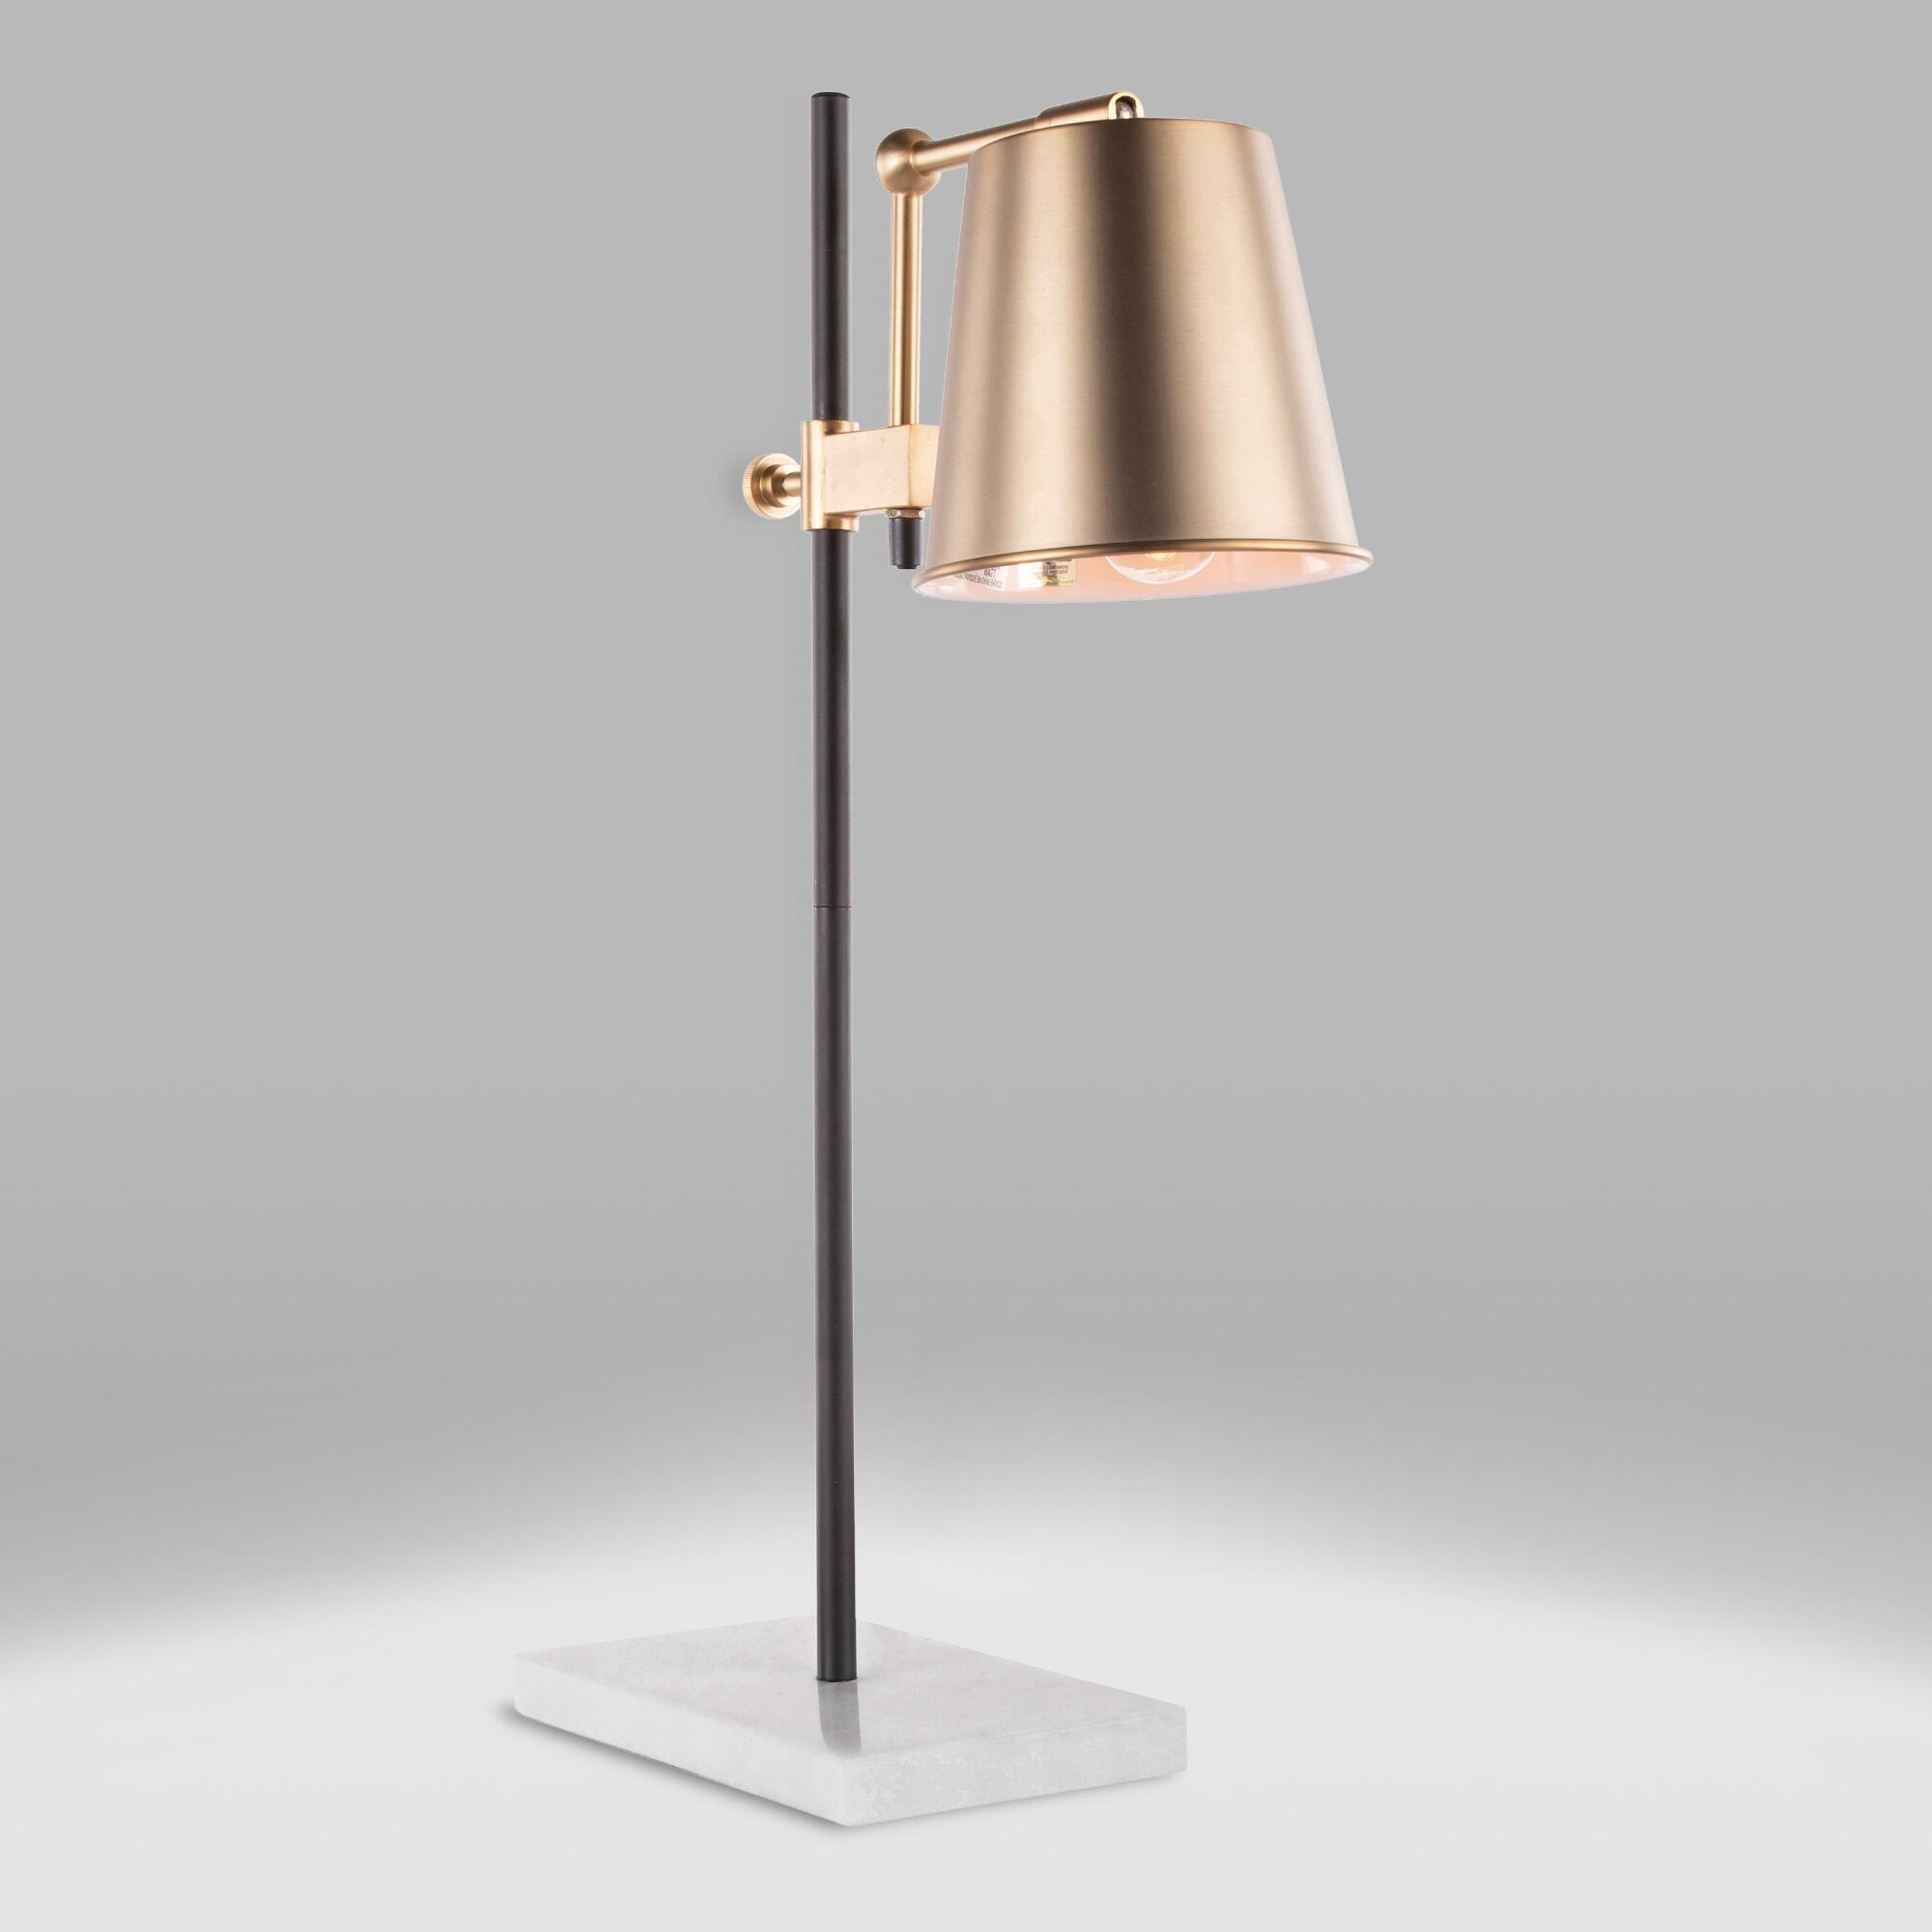 Antiqued Brass and White Marble Dominic Table Lamp by World Market